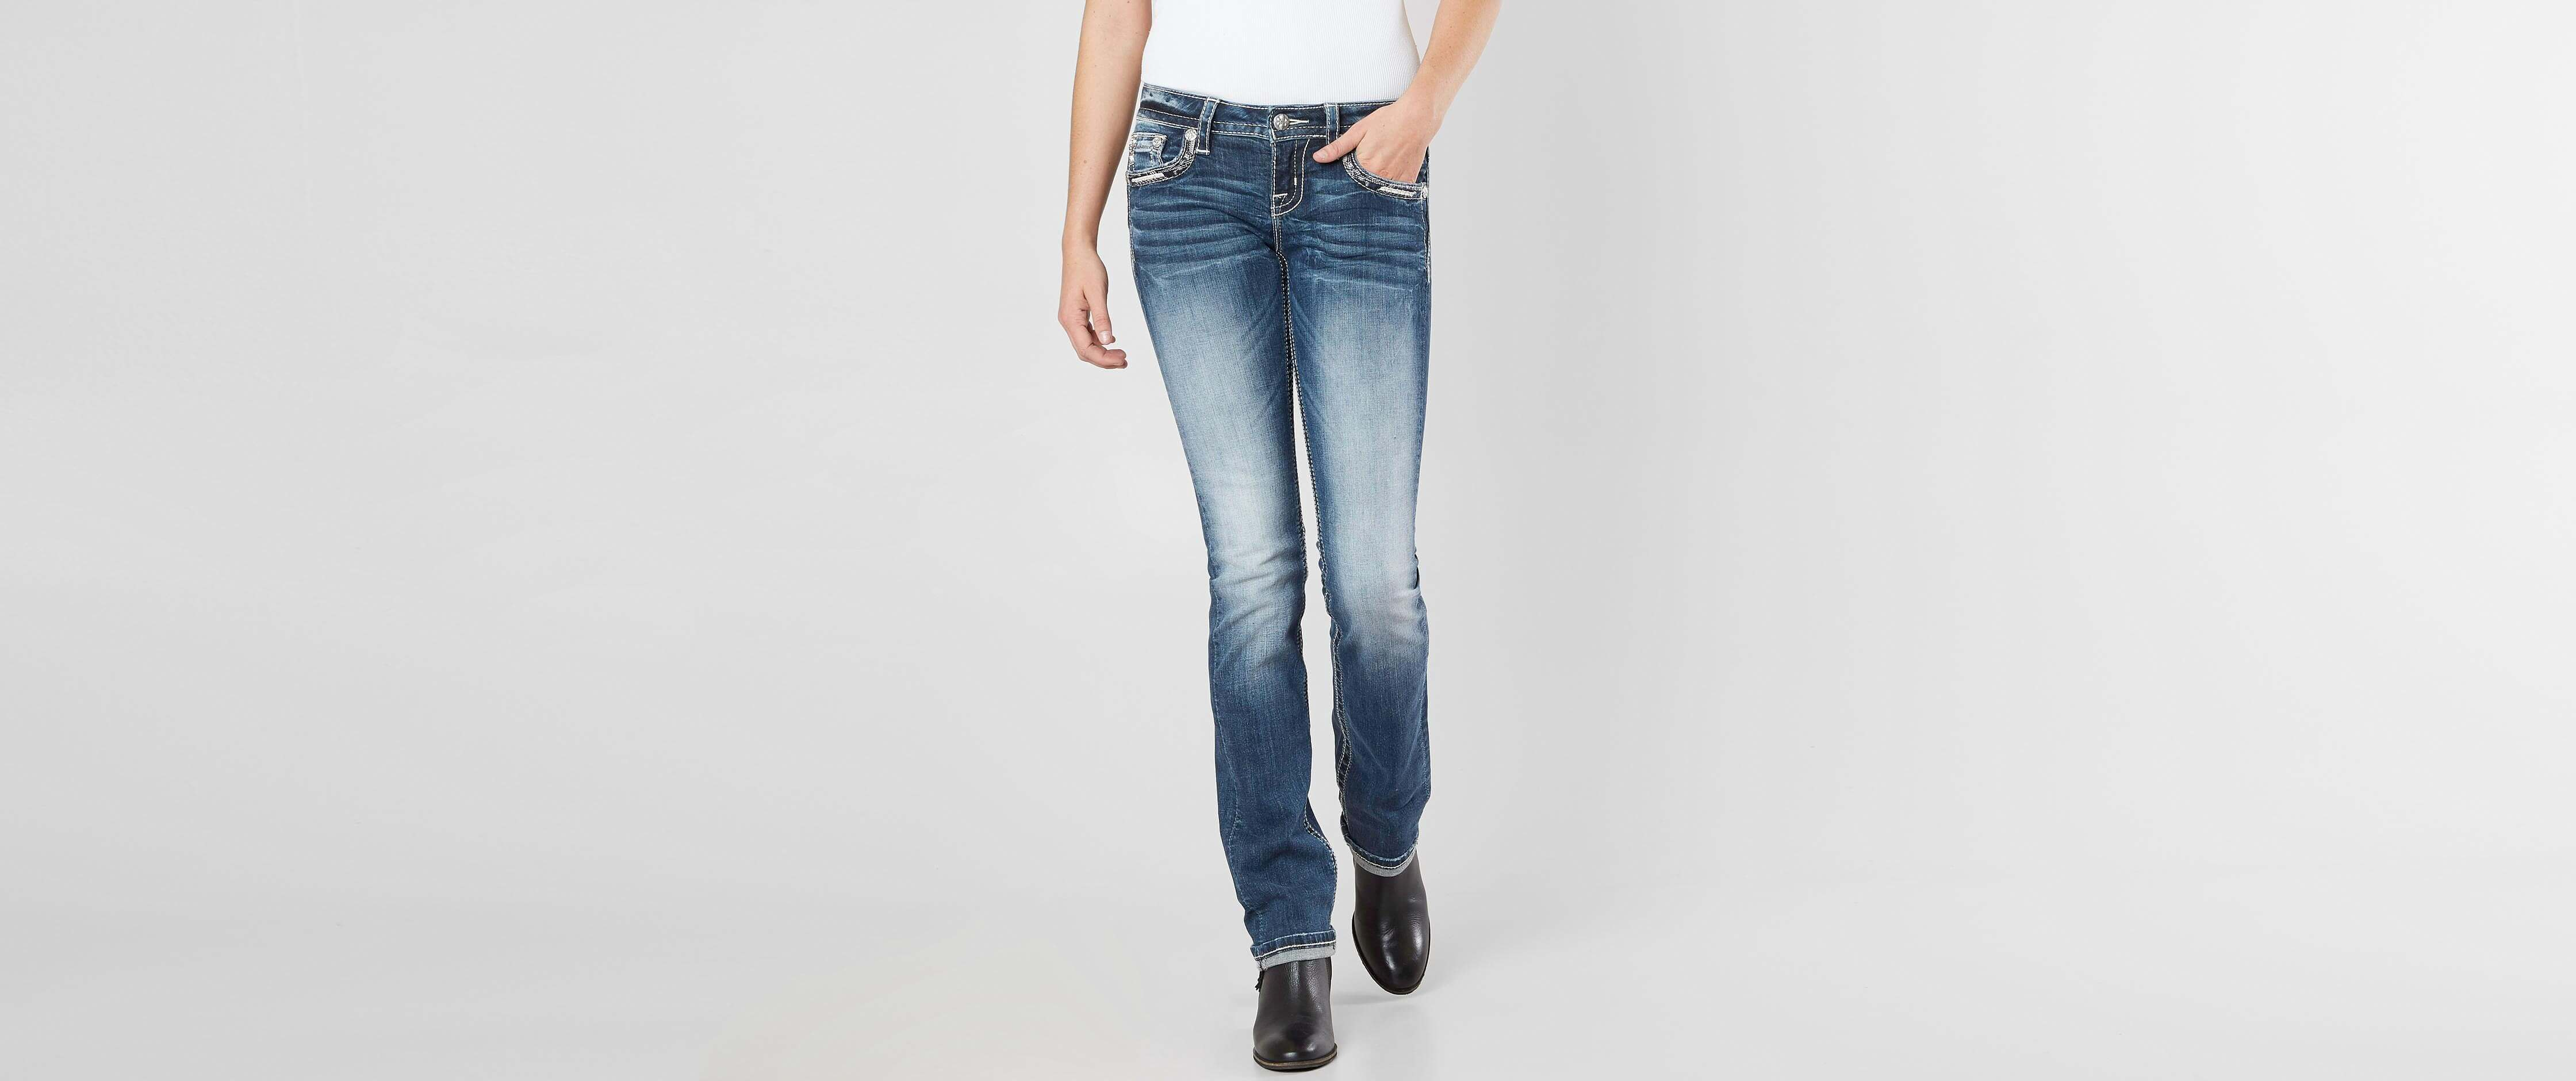 What size miss me jeans would you wear if you are a size 14?